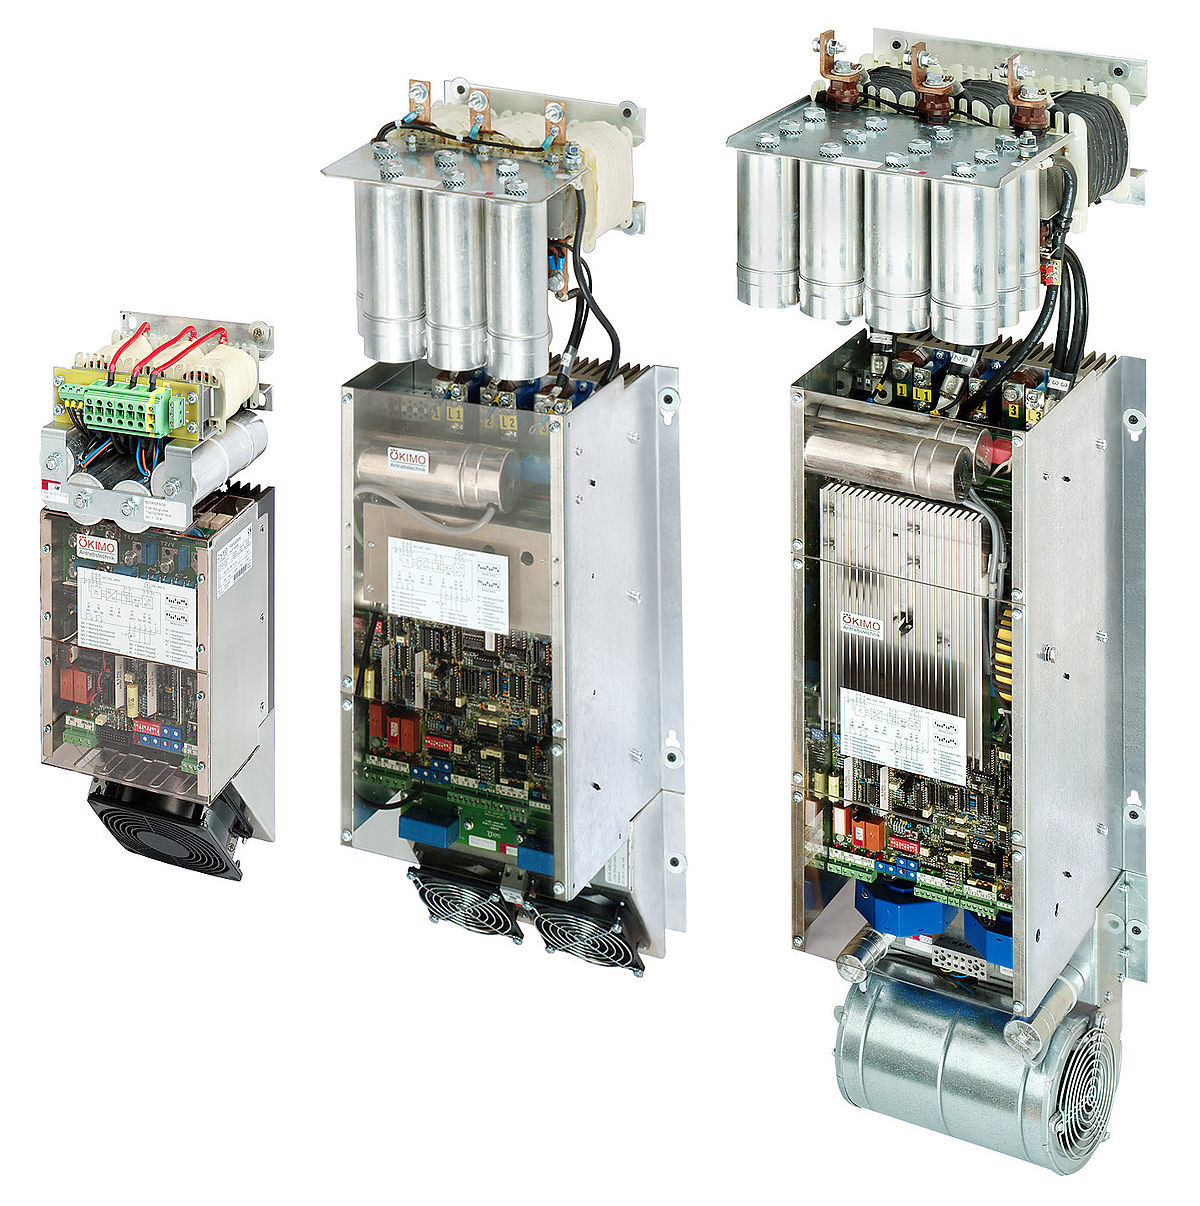 Abb Contactor Wiring Diagram Adjustable Speed Drive Wikipedia